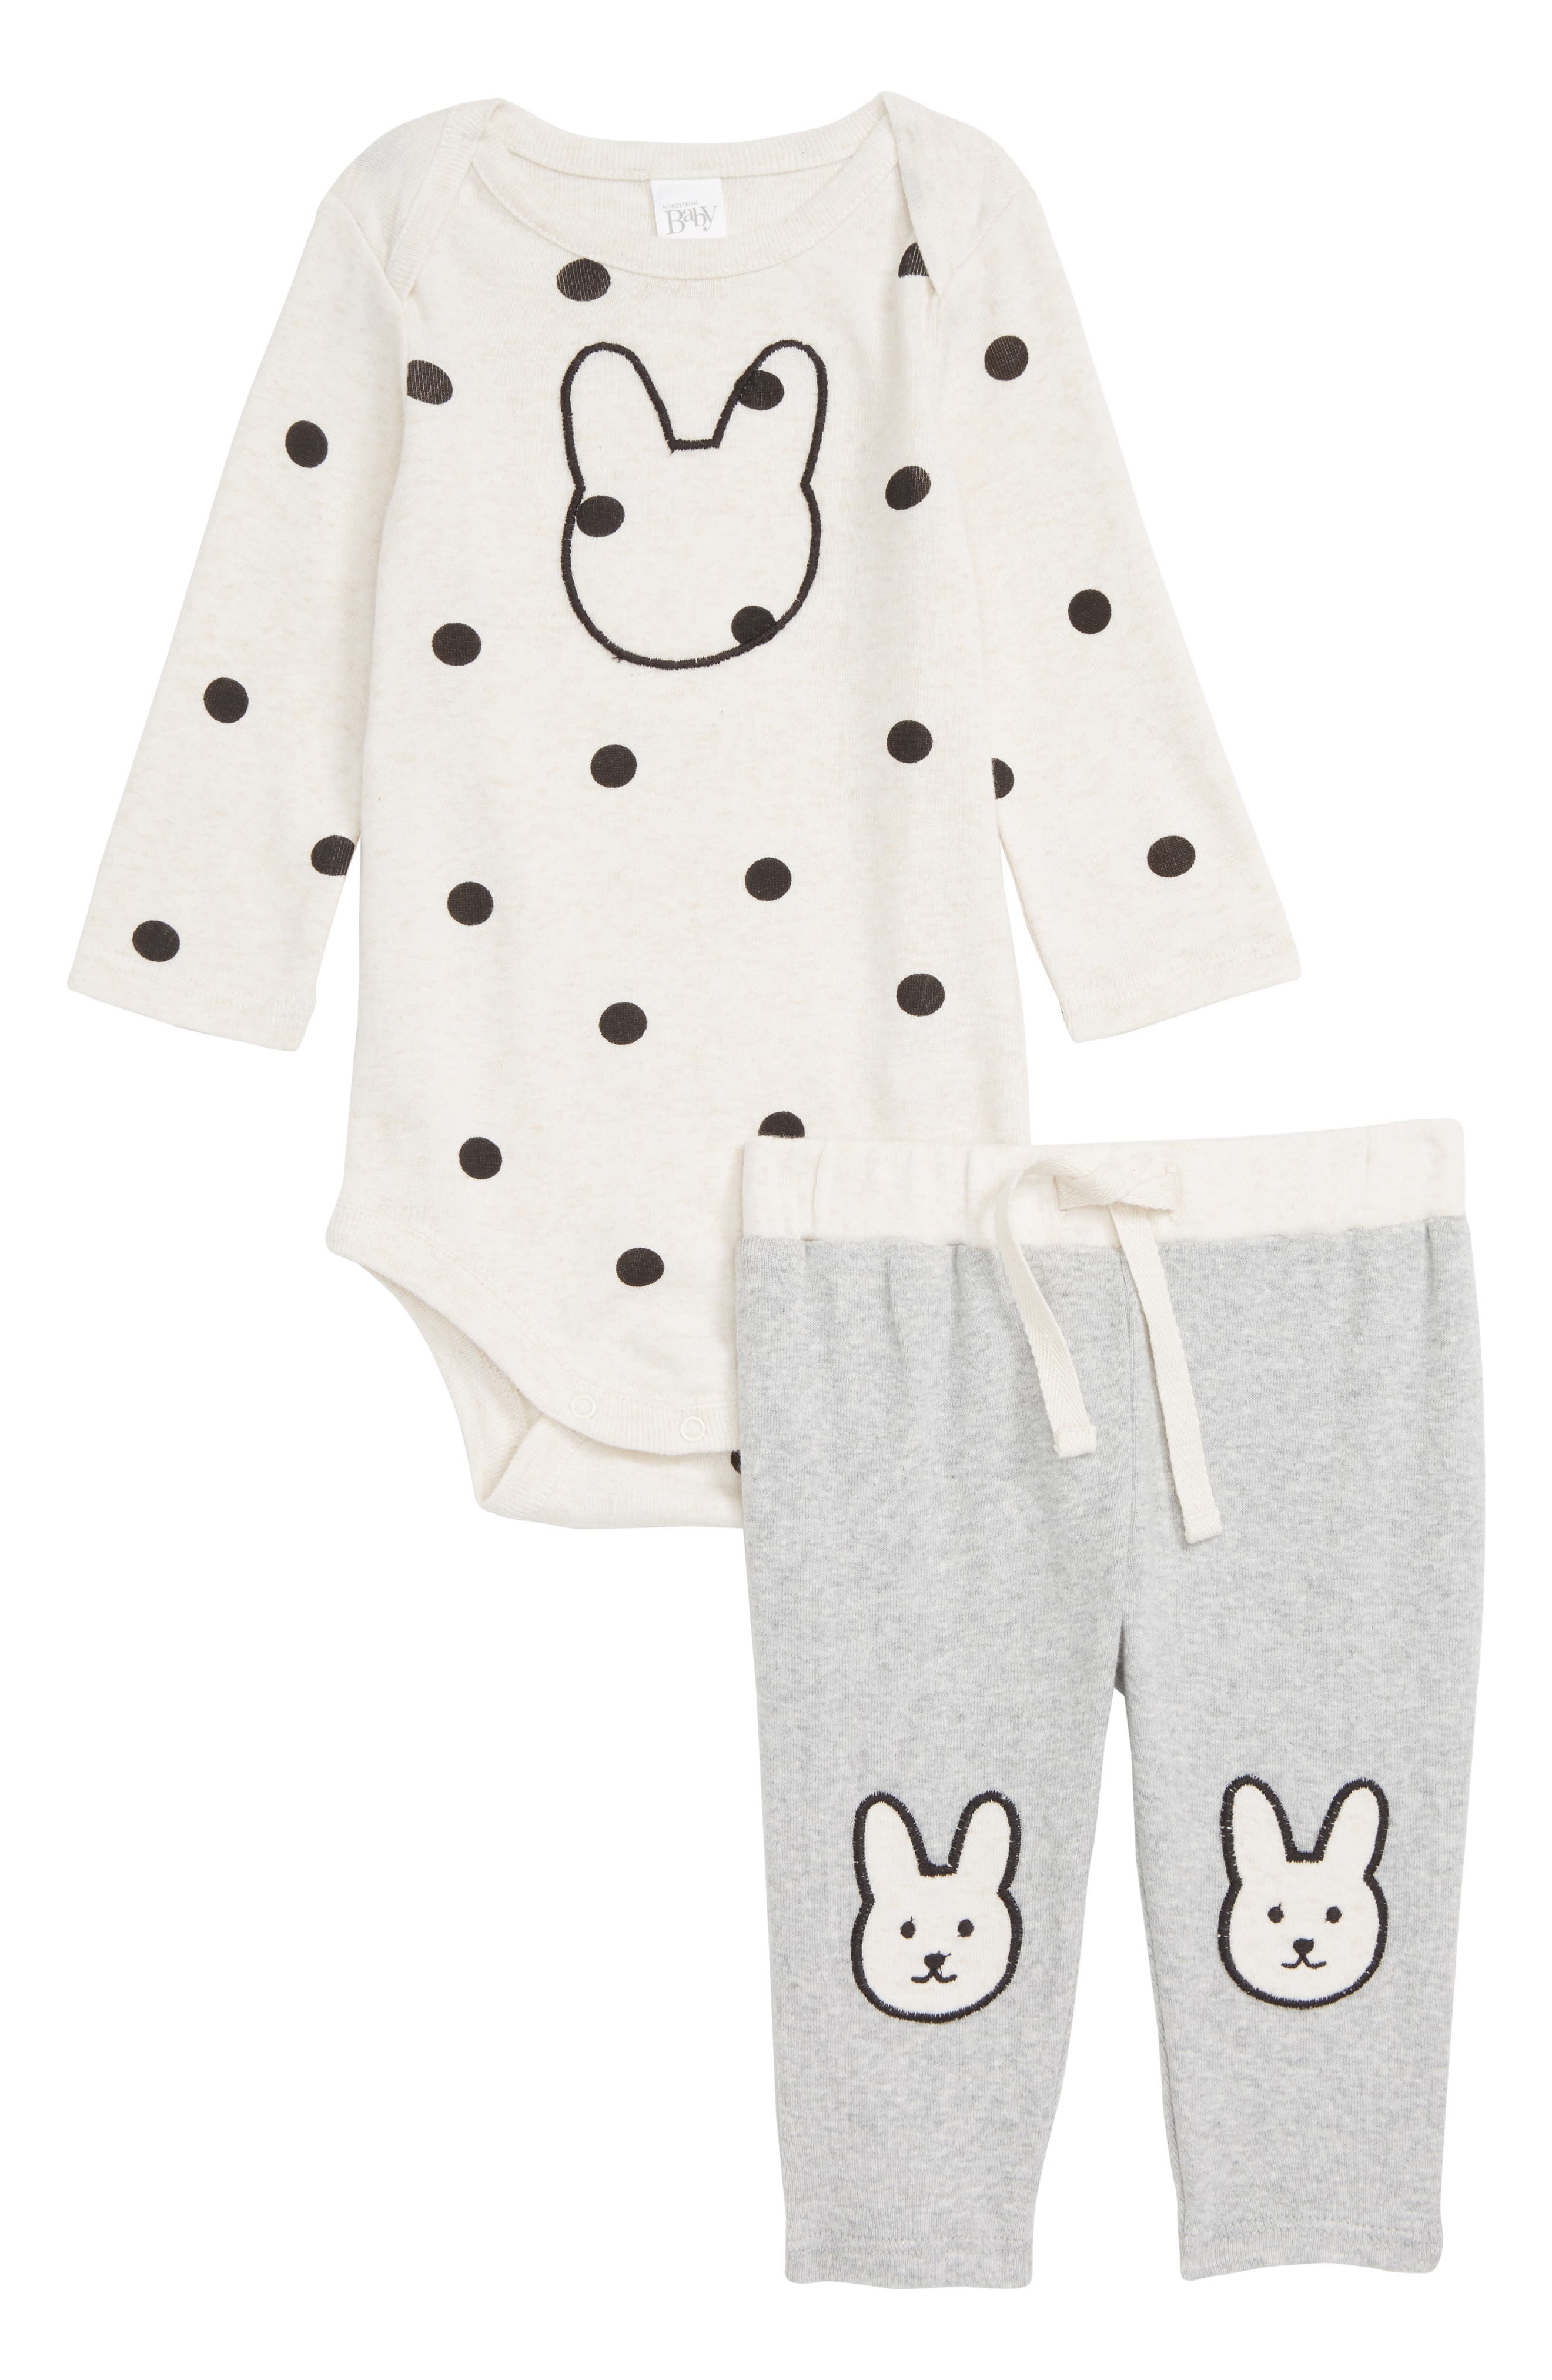 Bunny Bodysuit & Pants Set,                             Main thumbnail 1, color,                             IVORY VANILLA HEATHER BUNNY